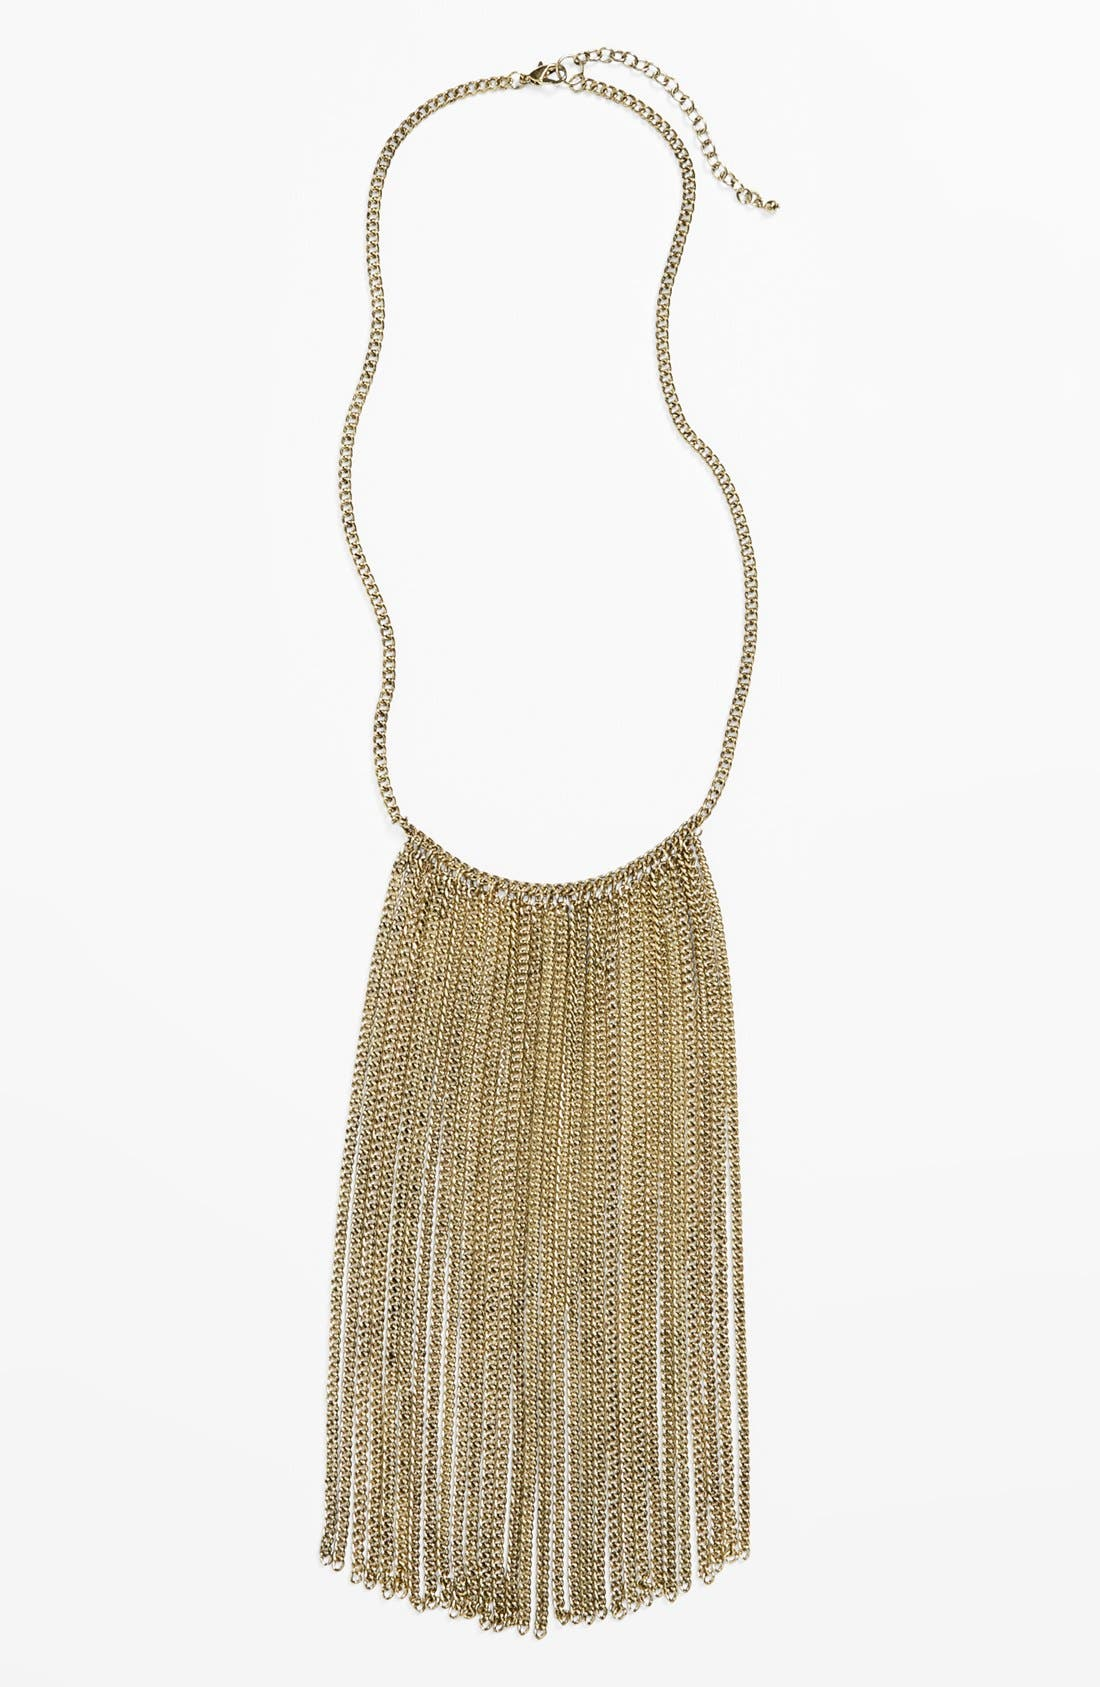 Alternate Image 1 Selected - Stephan & Co. Chain Fringe Necklace (Juniors)